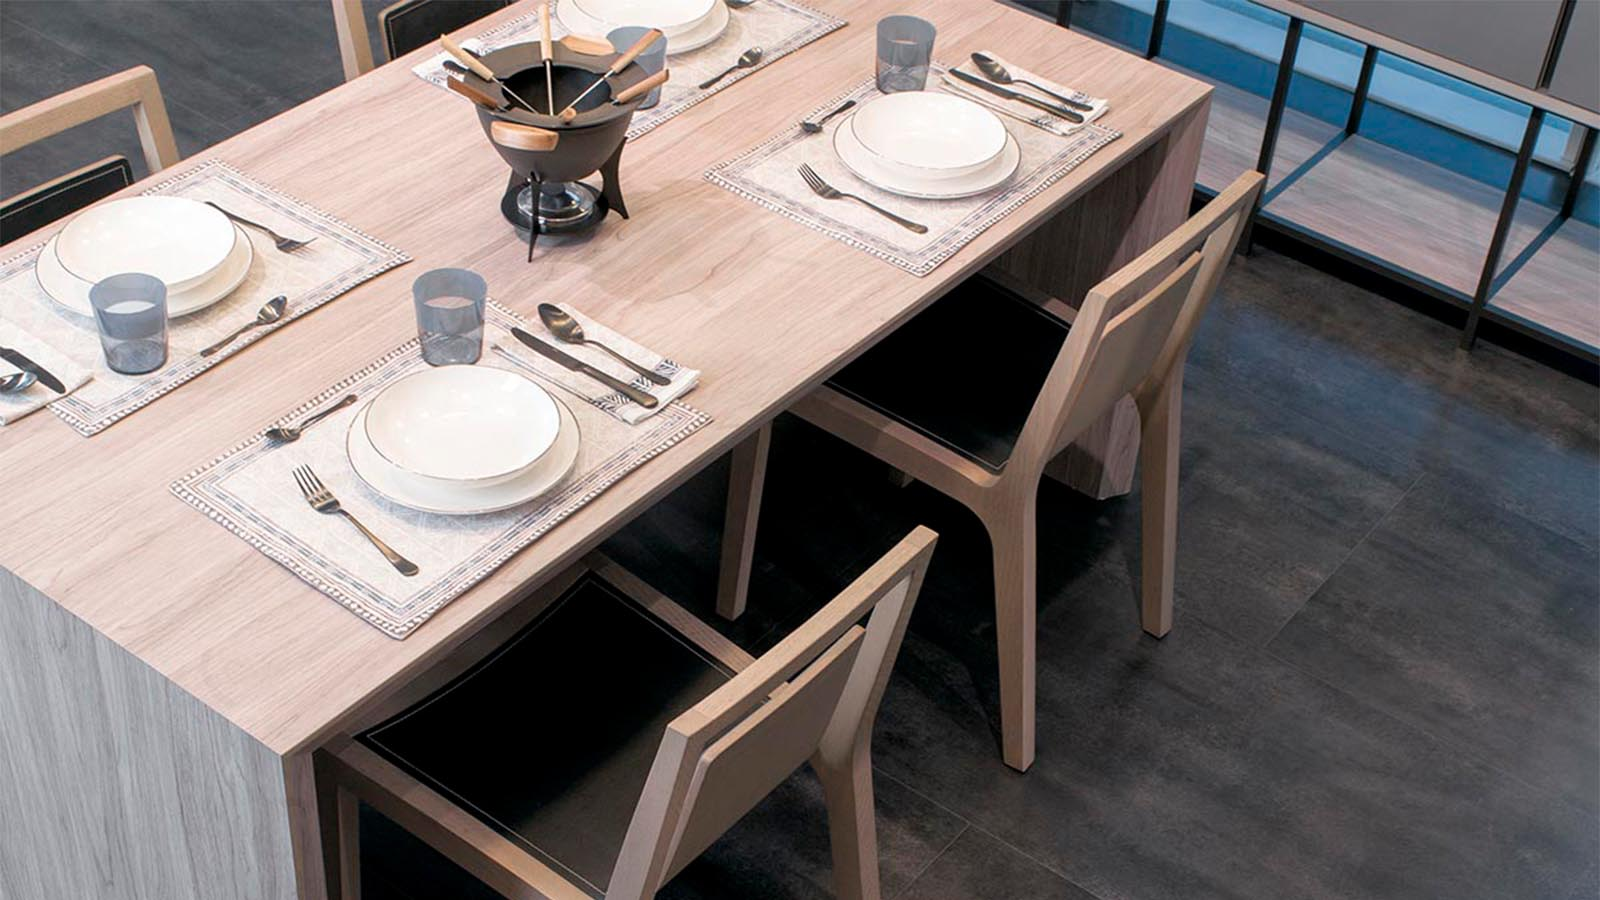 How to choose the best kitchen table and chairs for your home